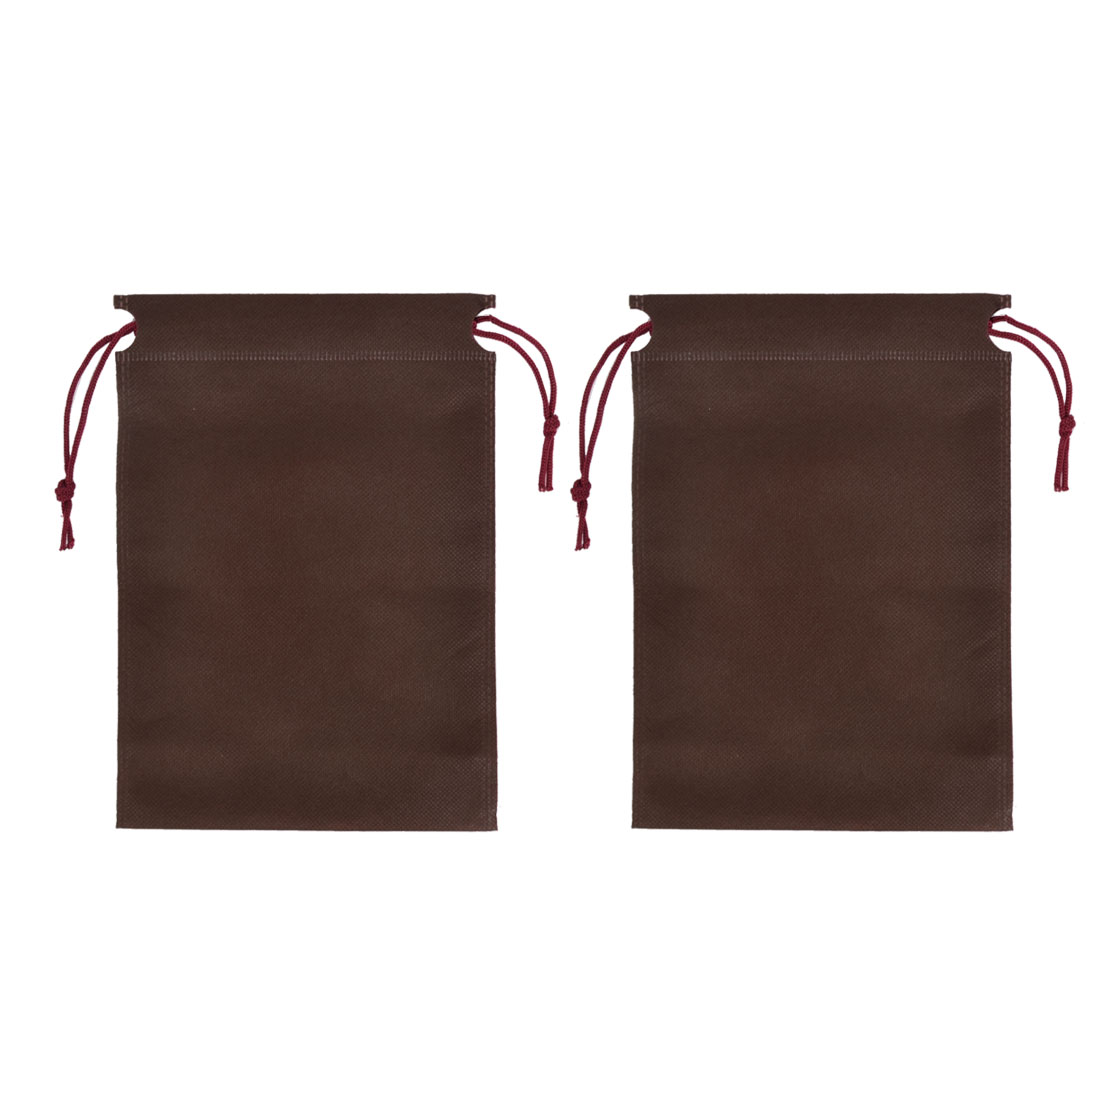 Clothes Dust Cover Storage Drawstring Bags 23 x 17cm Chocolate Color 2pcs